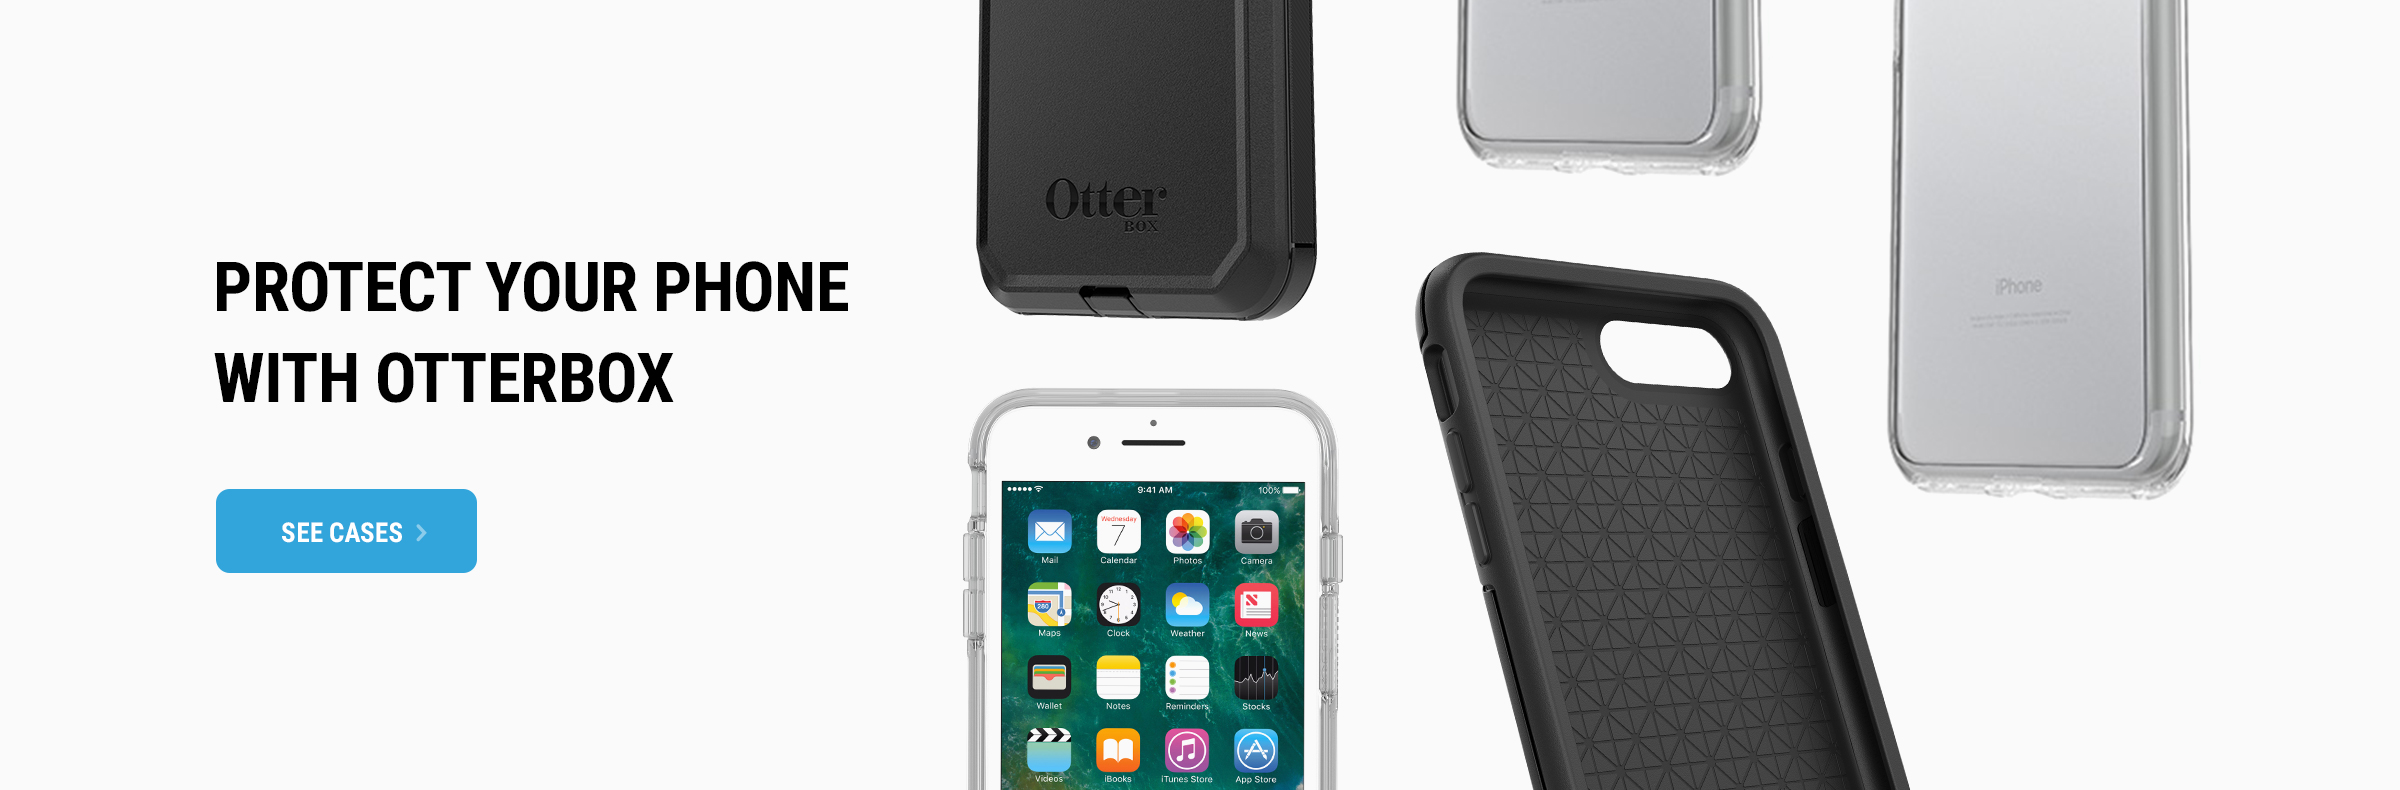 Protect Your Phone with Otterbox Cases at WIRELESSWAVE